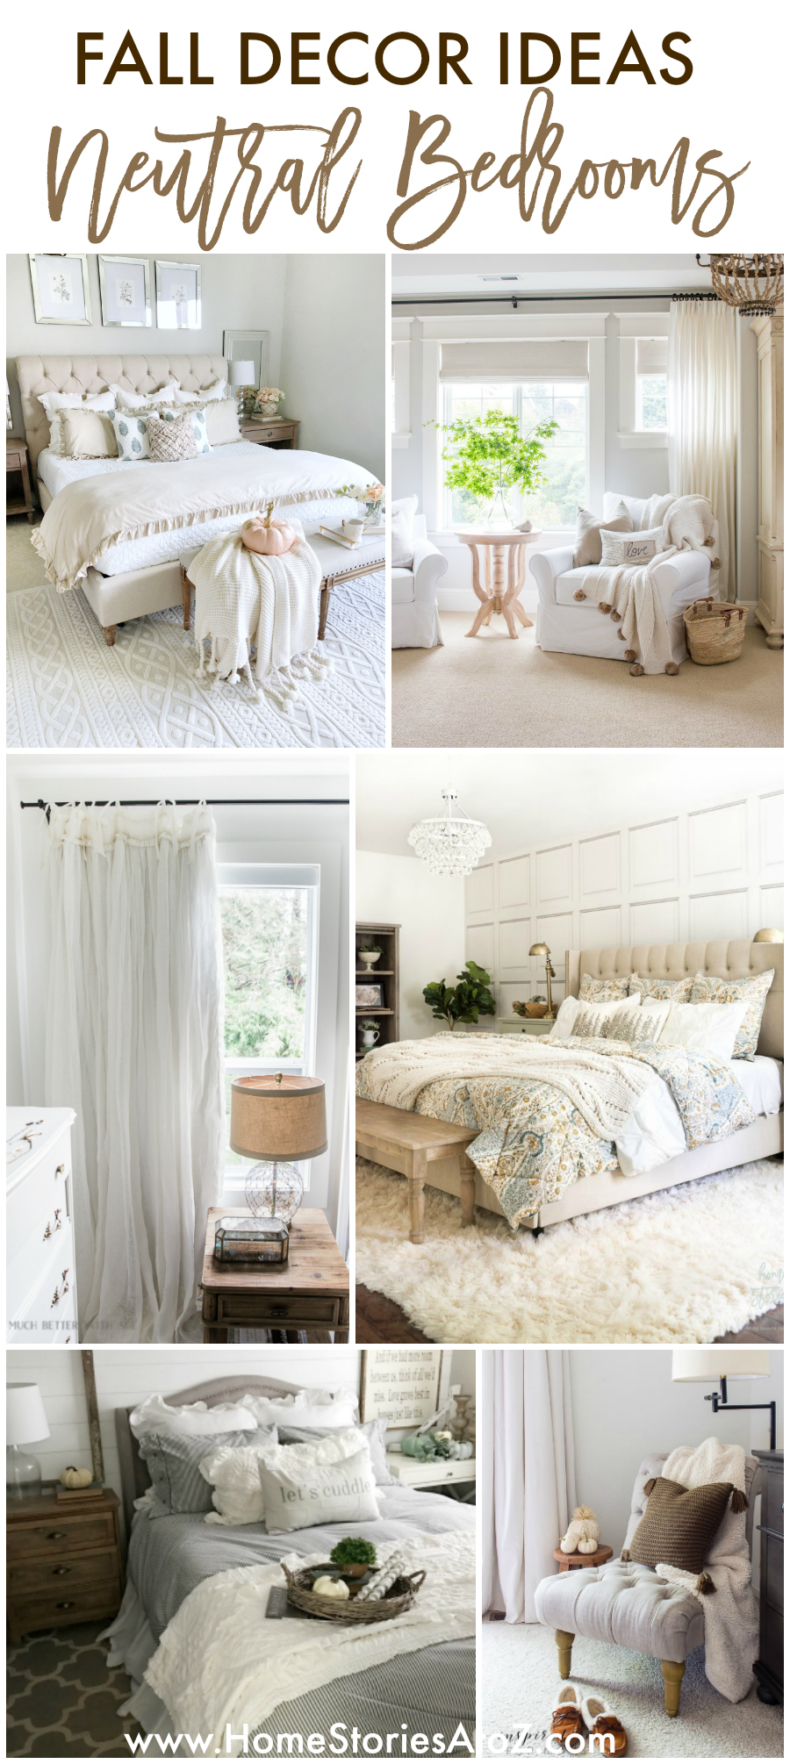 Fall Decor Ideas - Neutral Bedrooms for Fall